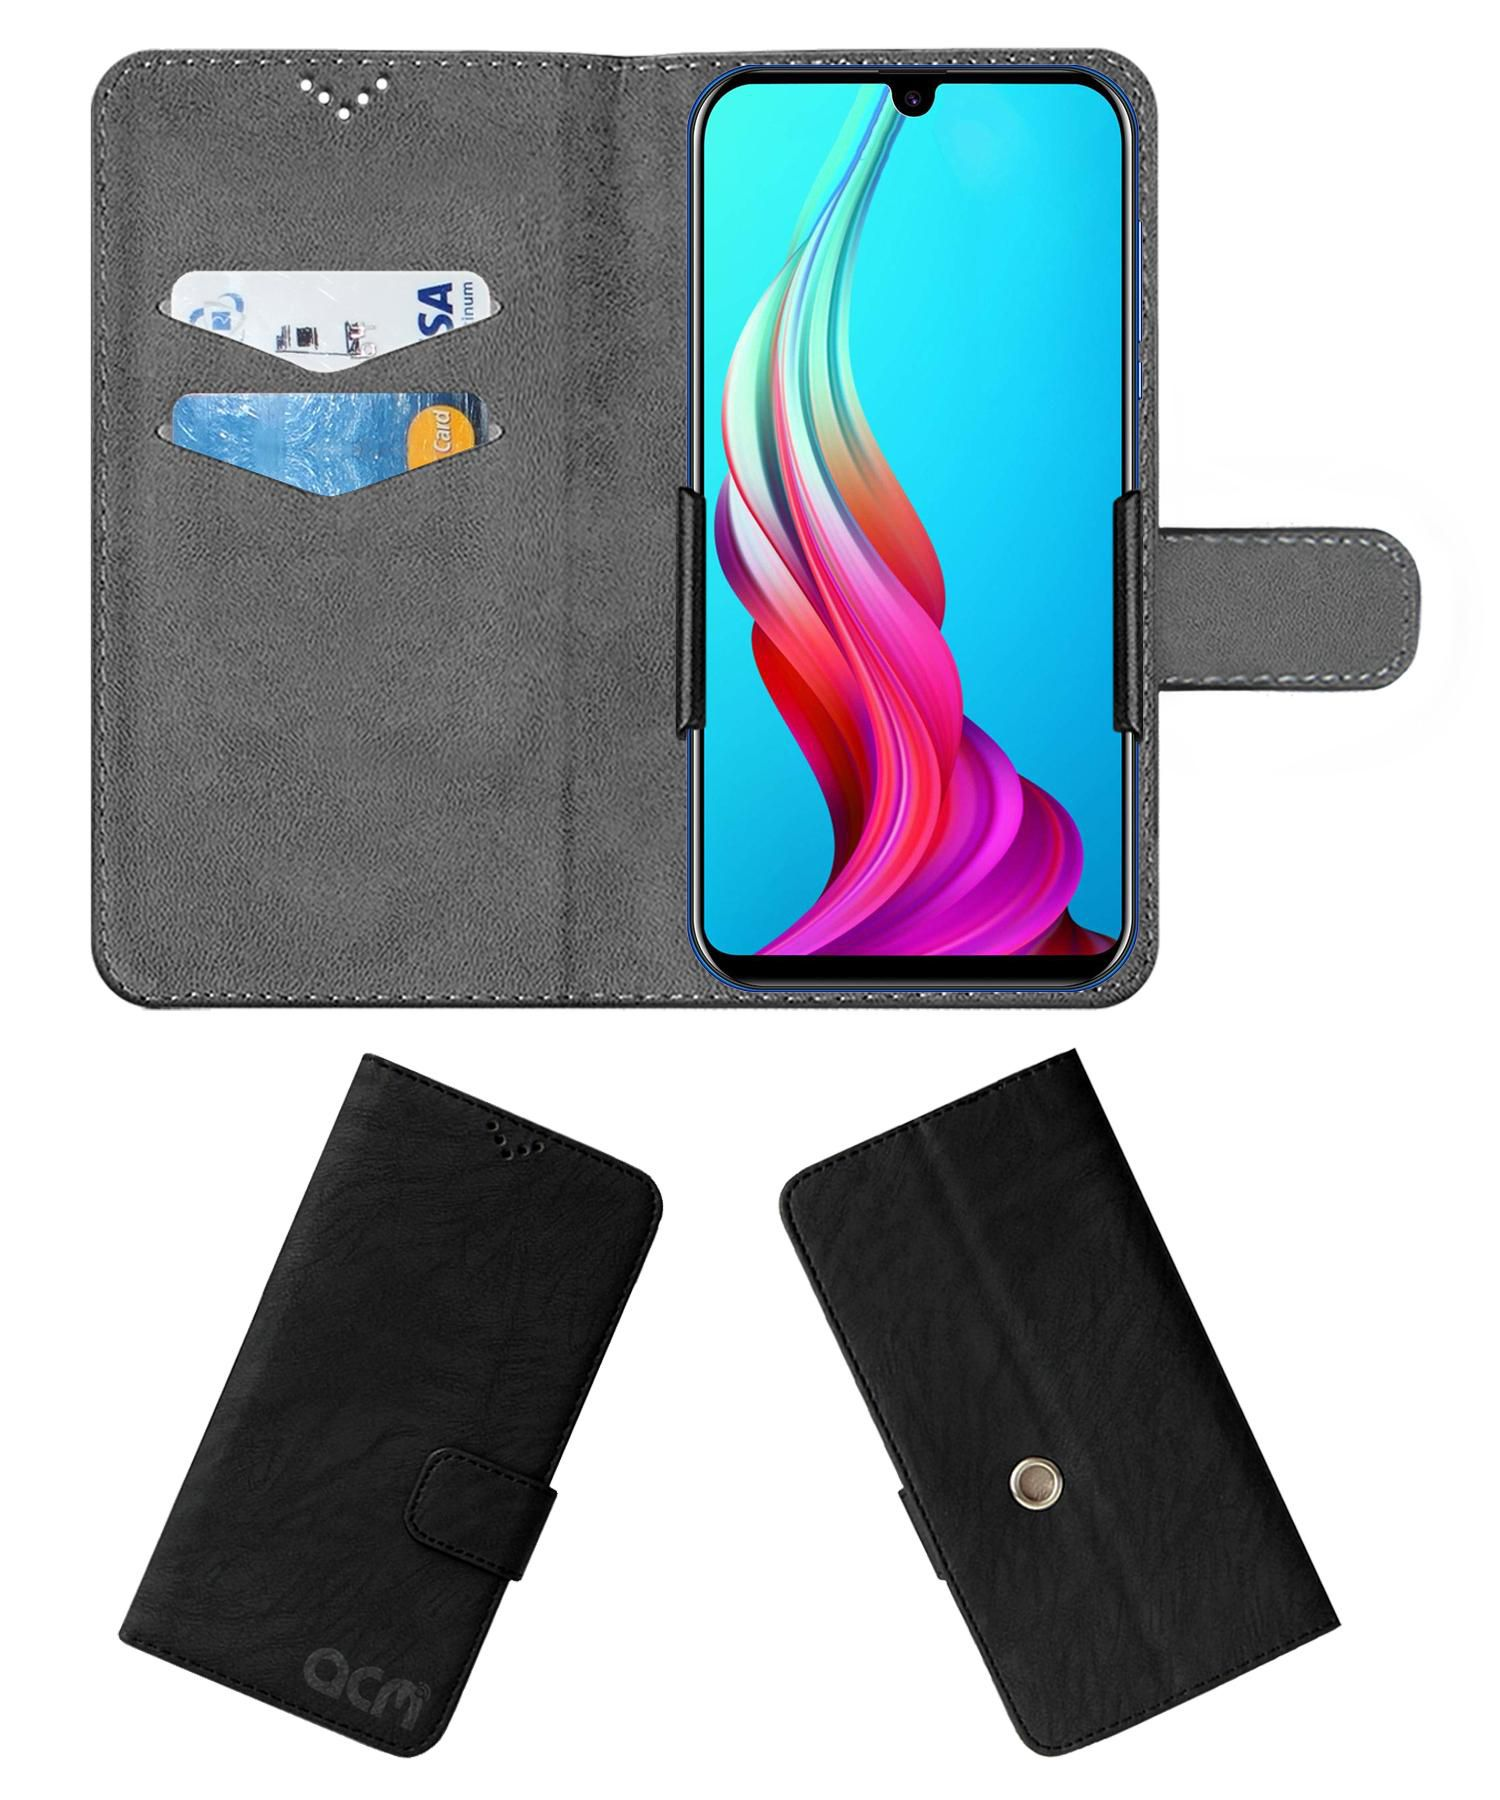 COOLPAD COOL 3 PLUS Flip Cover by ACM - Black Clip holder to hold your mobile securely